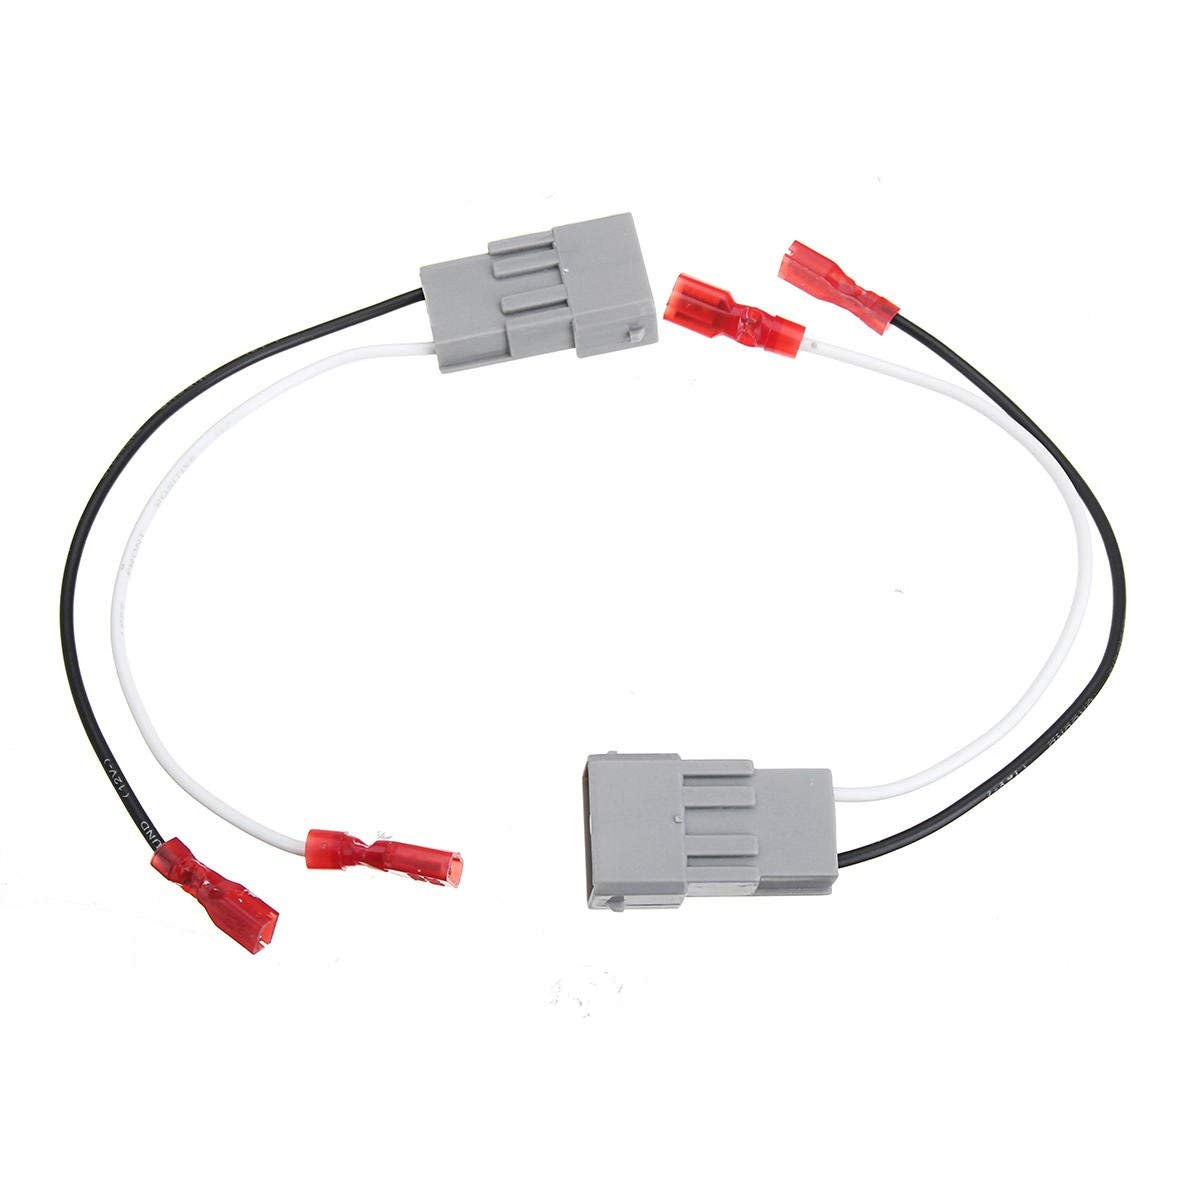 hight resolution of get quotations 2pcs speaker connector harness adapter wire cable wiring harness sp 7800 72 7800